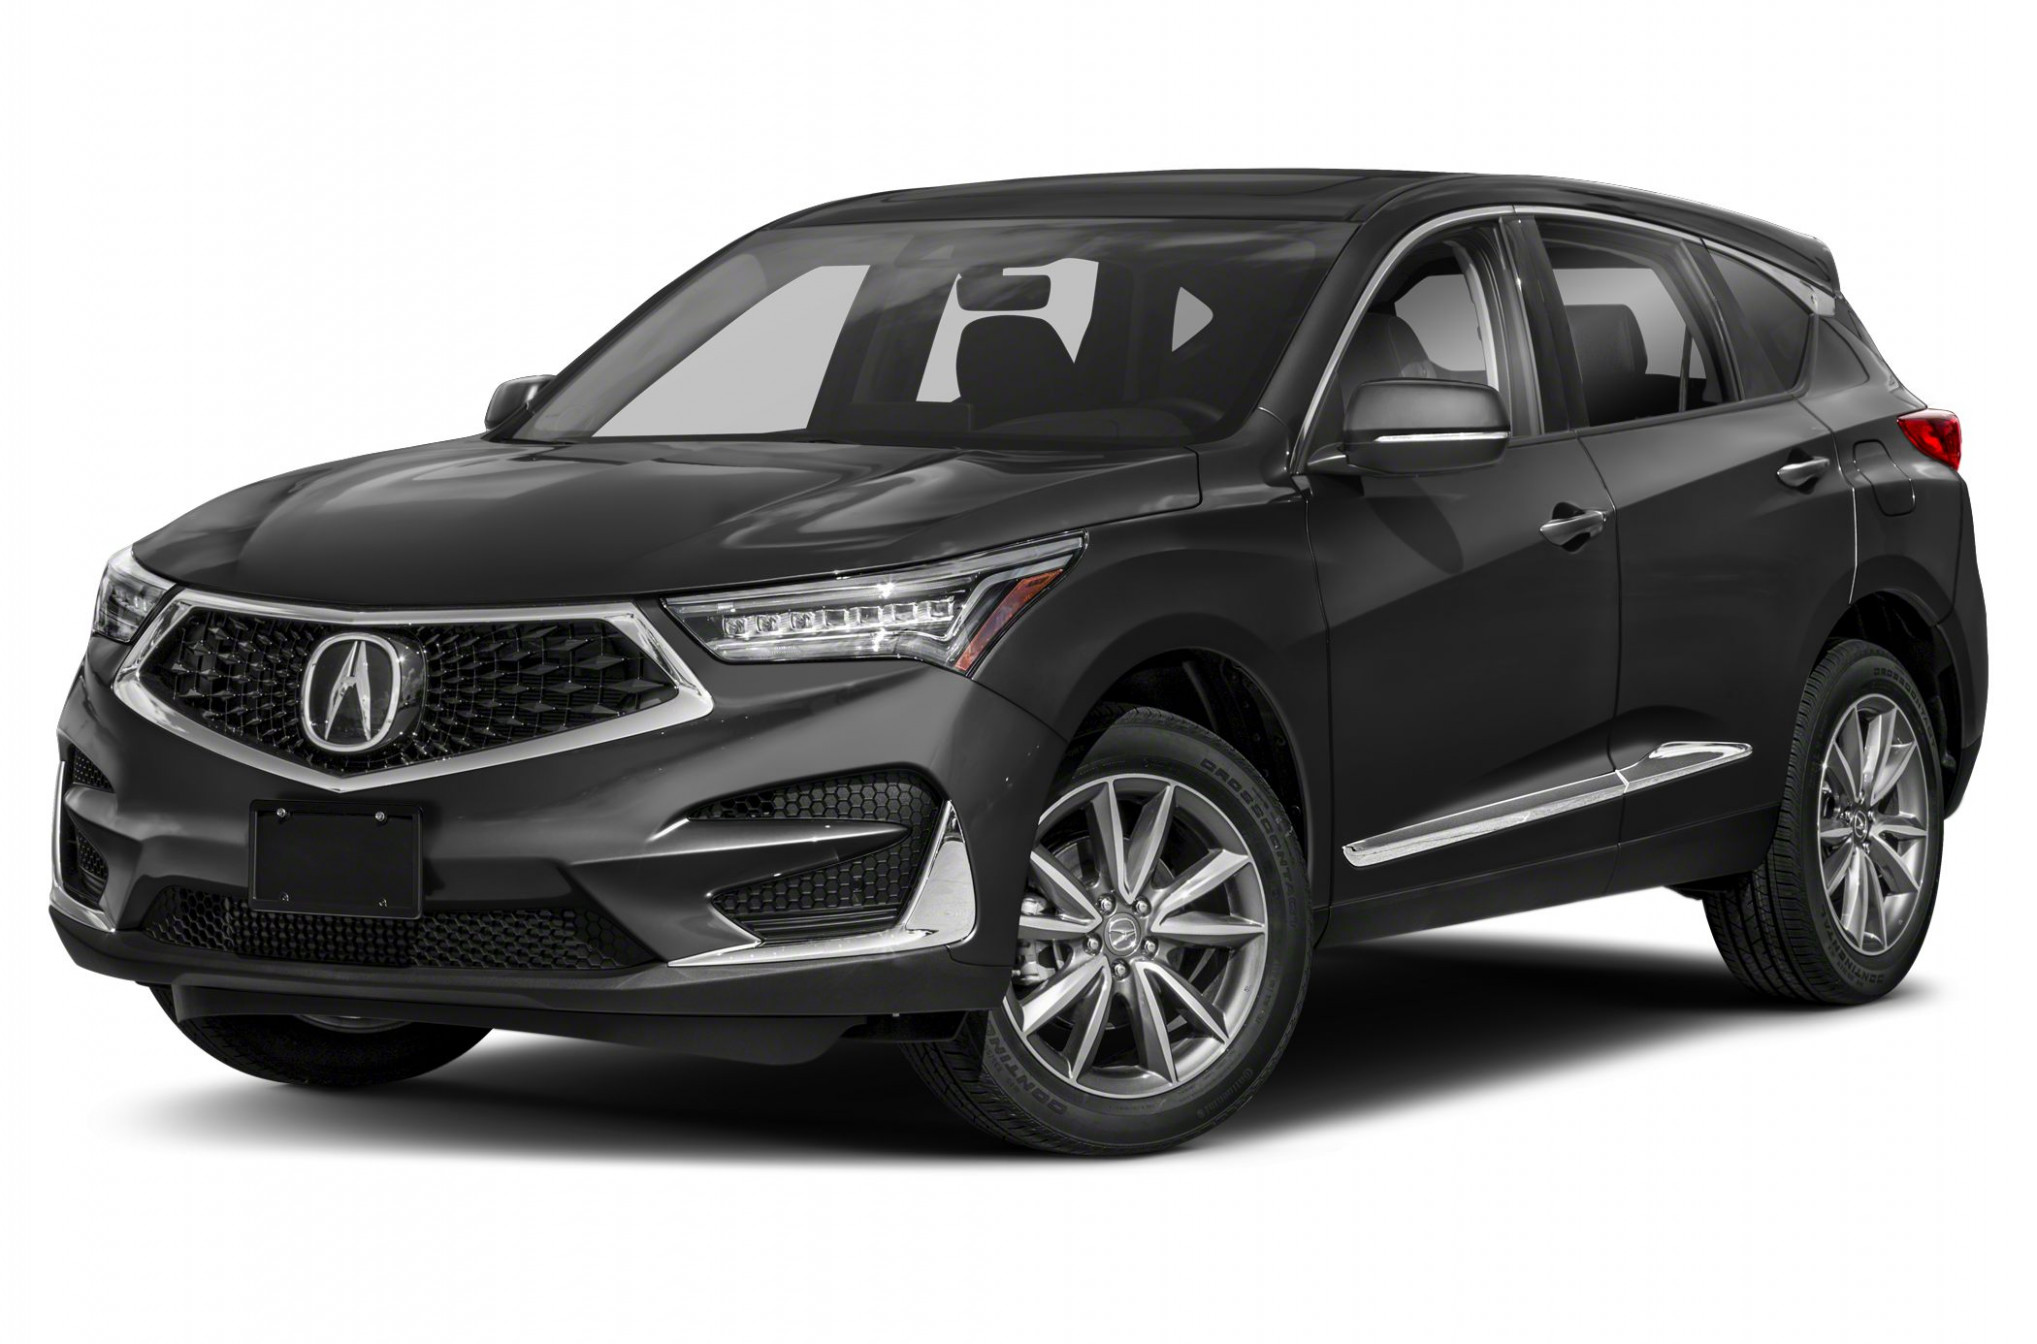 7 Acura RDX Technology Package 7dr Front-wheel Drive Pictures - 2020 acura rdx technology package